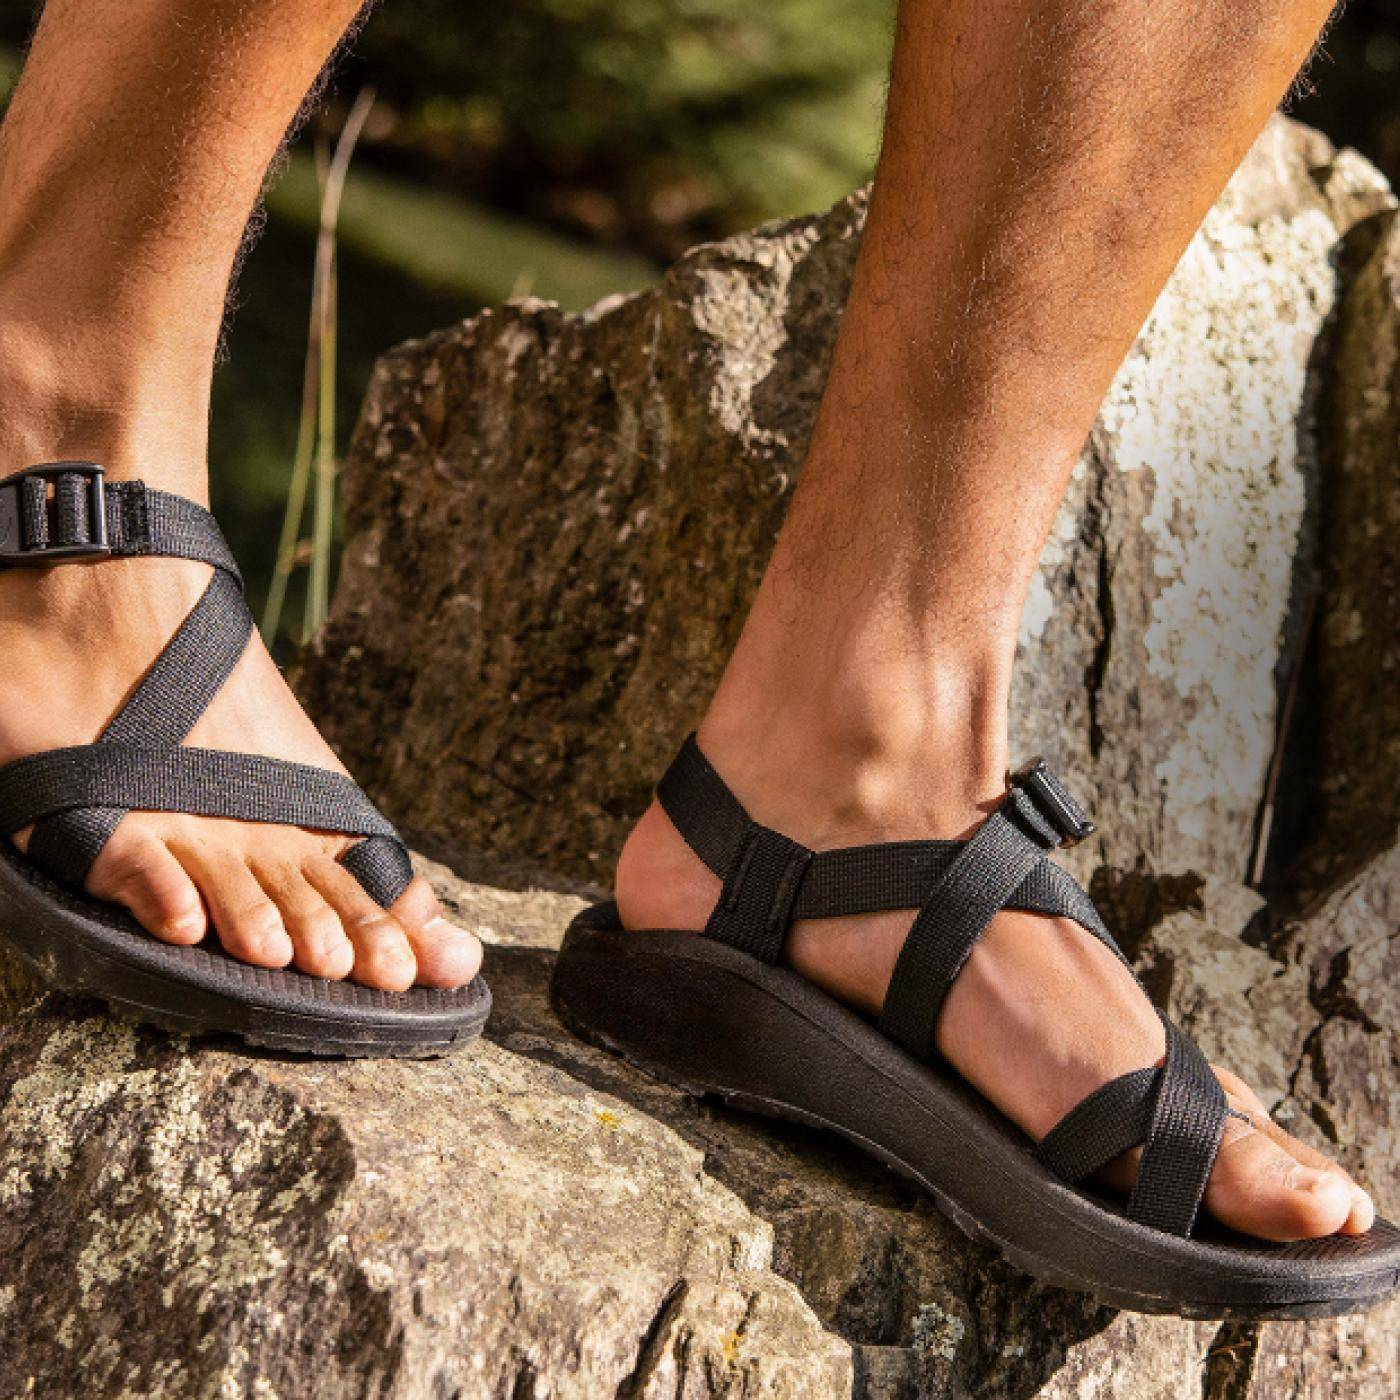 Water, Land, Rain or Shine <br> Adventure Time! <br> Shop Chaco Sandals for Any Adventure